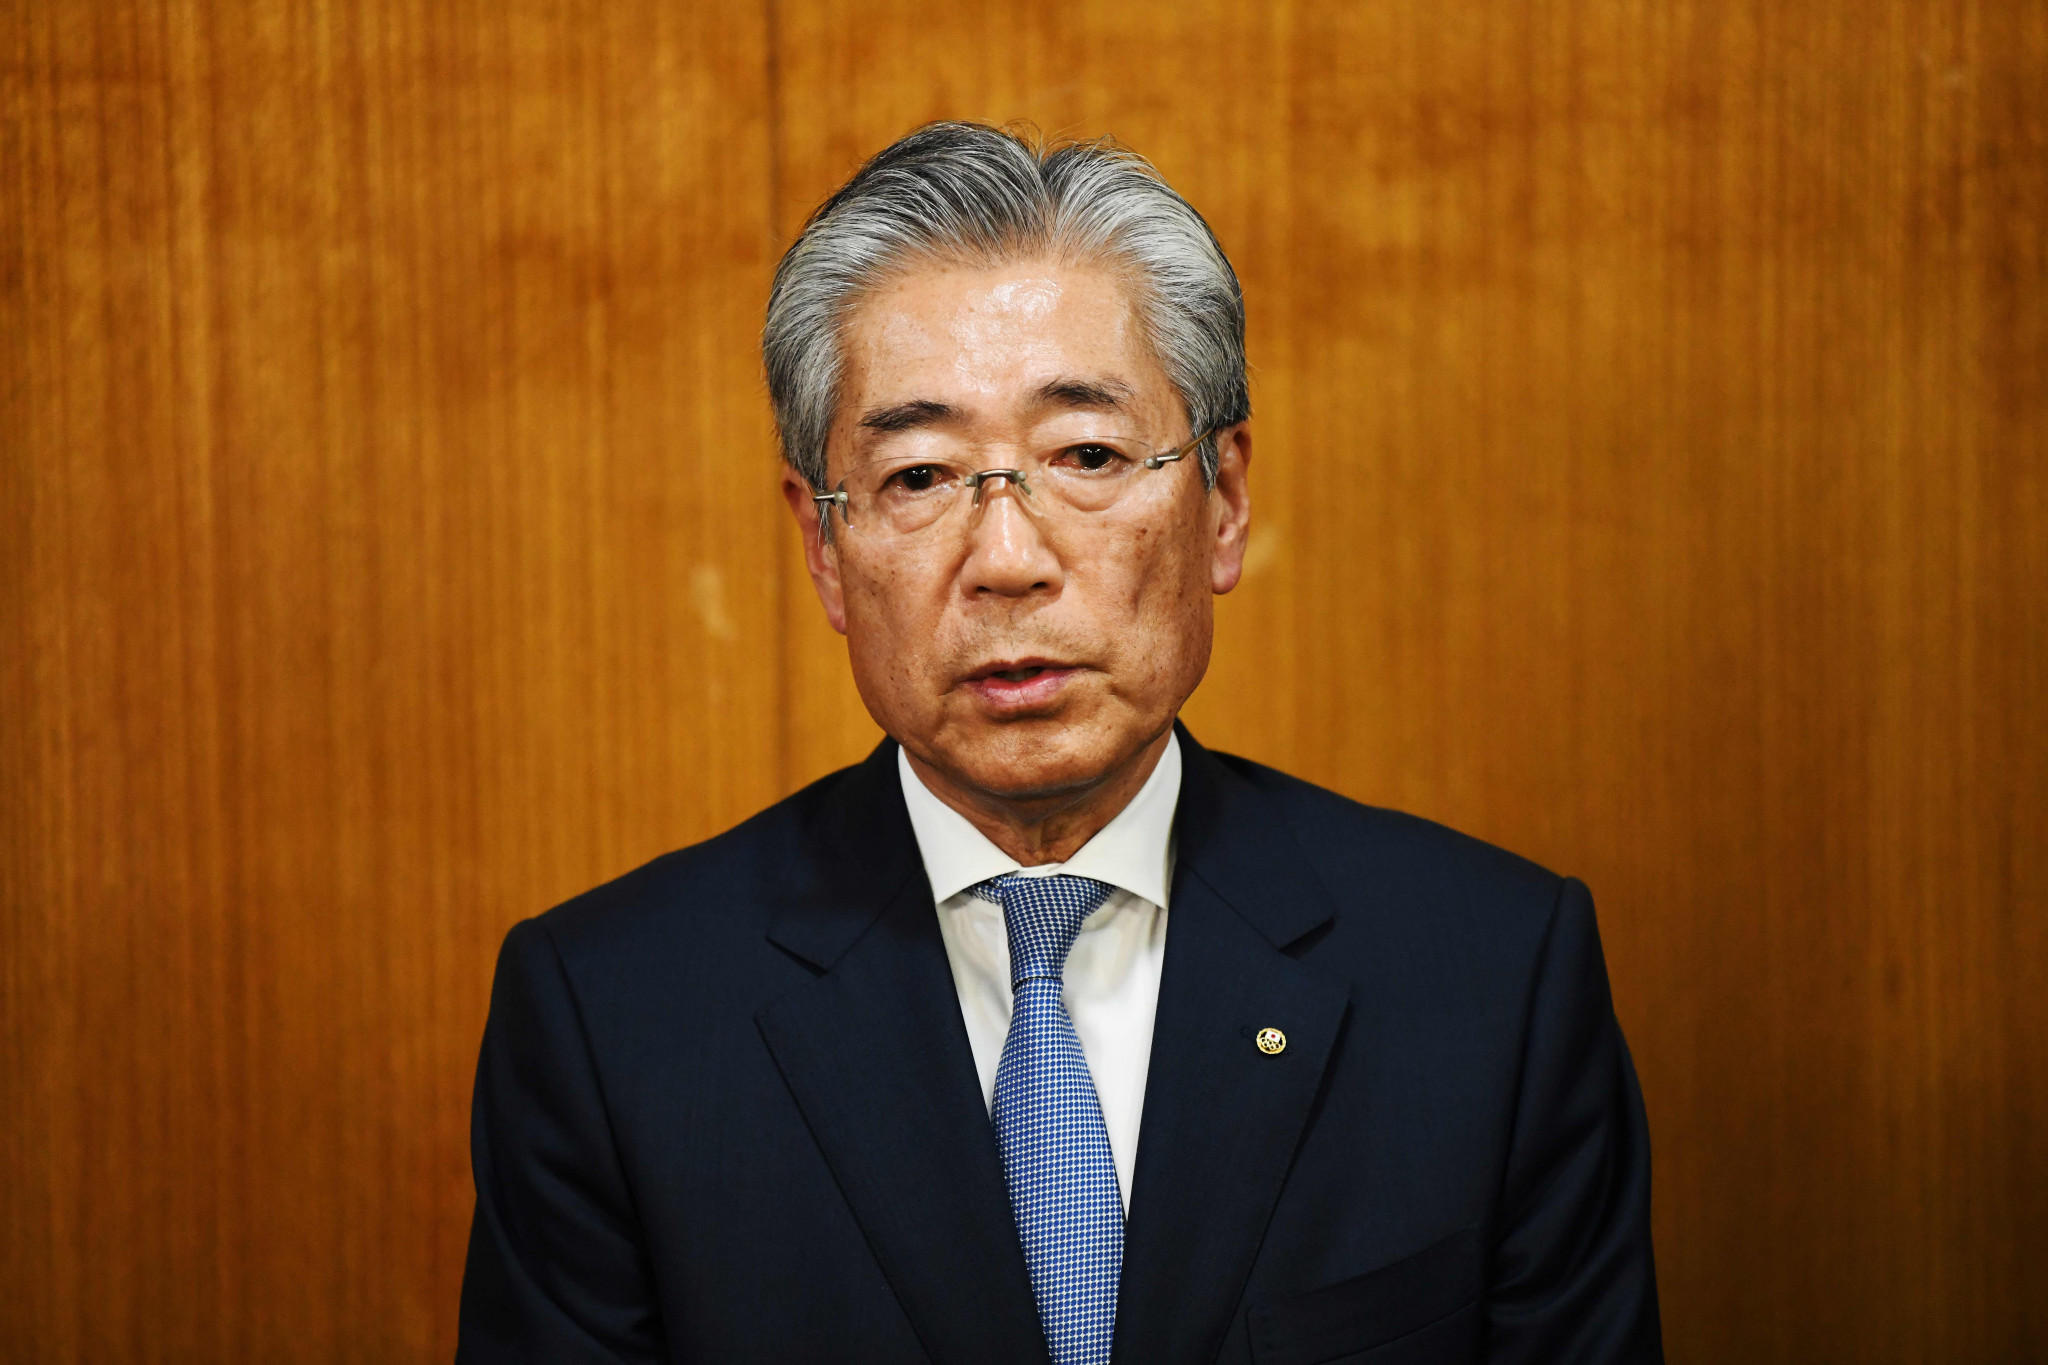 Tsunekazu Takeda is due to step down from his role as President of the Japanese Olympic Committee this month after being implicated in an alleged bribery scandal connected to Tokyo's successful bid for the 2020 Olympic and Paralympic Games ©Getty Images